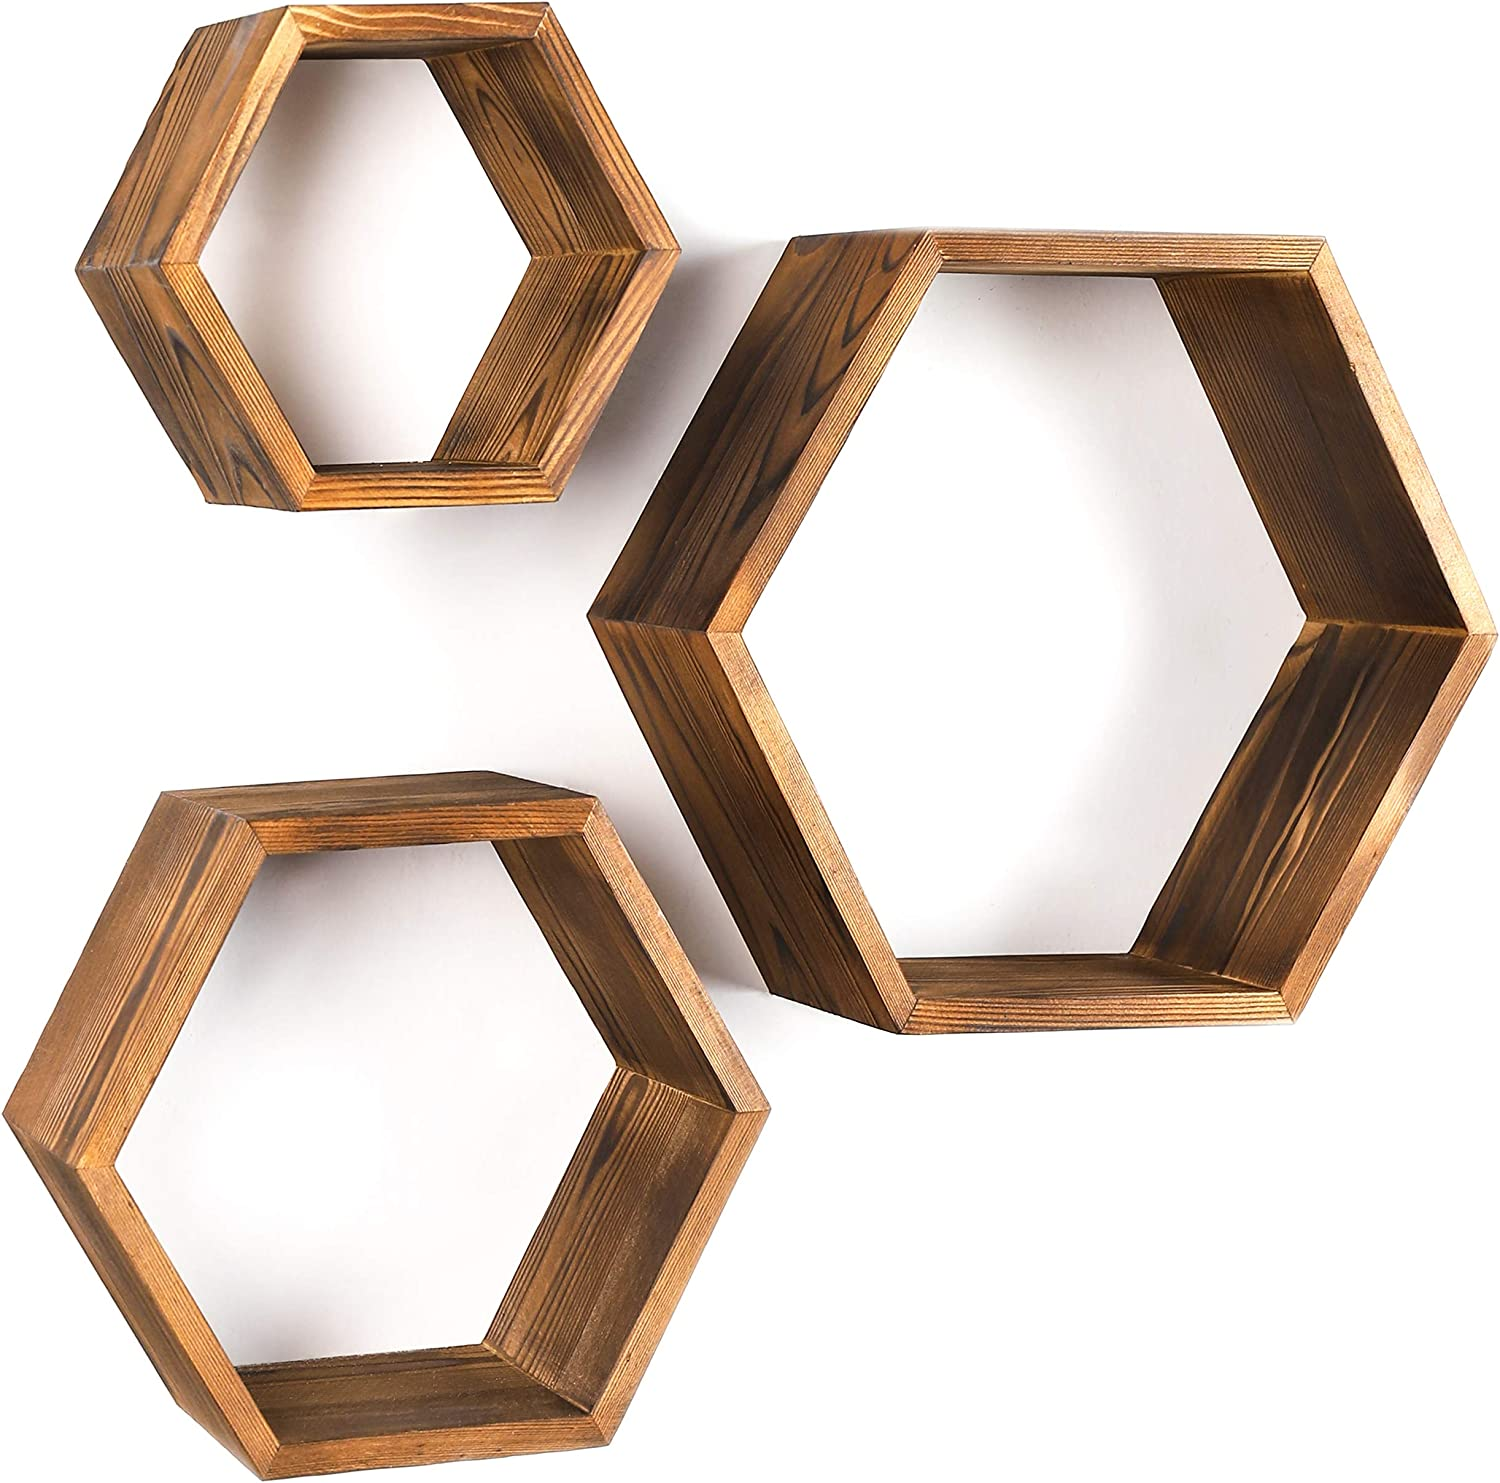 Hexagon Wall Decor Floating Shelves - 3-Pack Decorative Wall Shelf Set - Screws And Anchors Included - Pine Wood Geometric Shelves - Modern Honeycomb Shelving Set for Home Living Room, Kitchen, Office